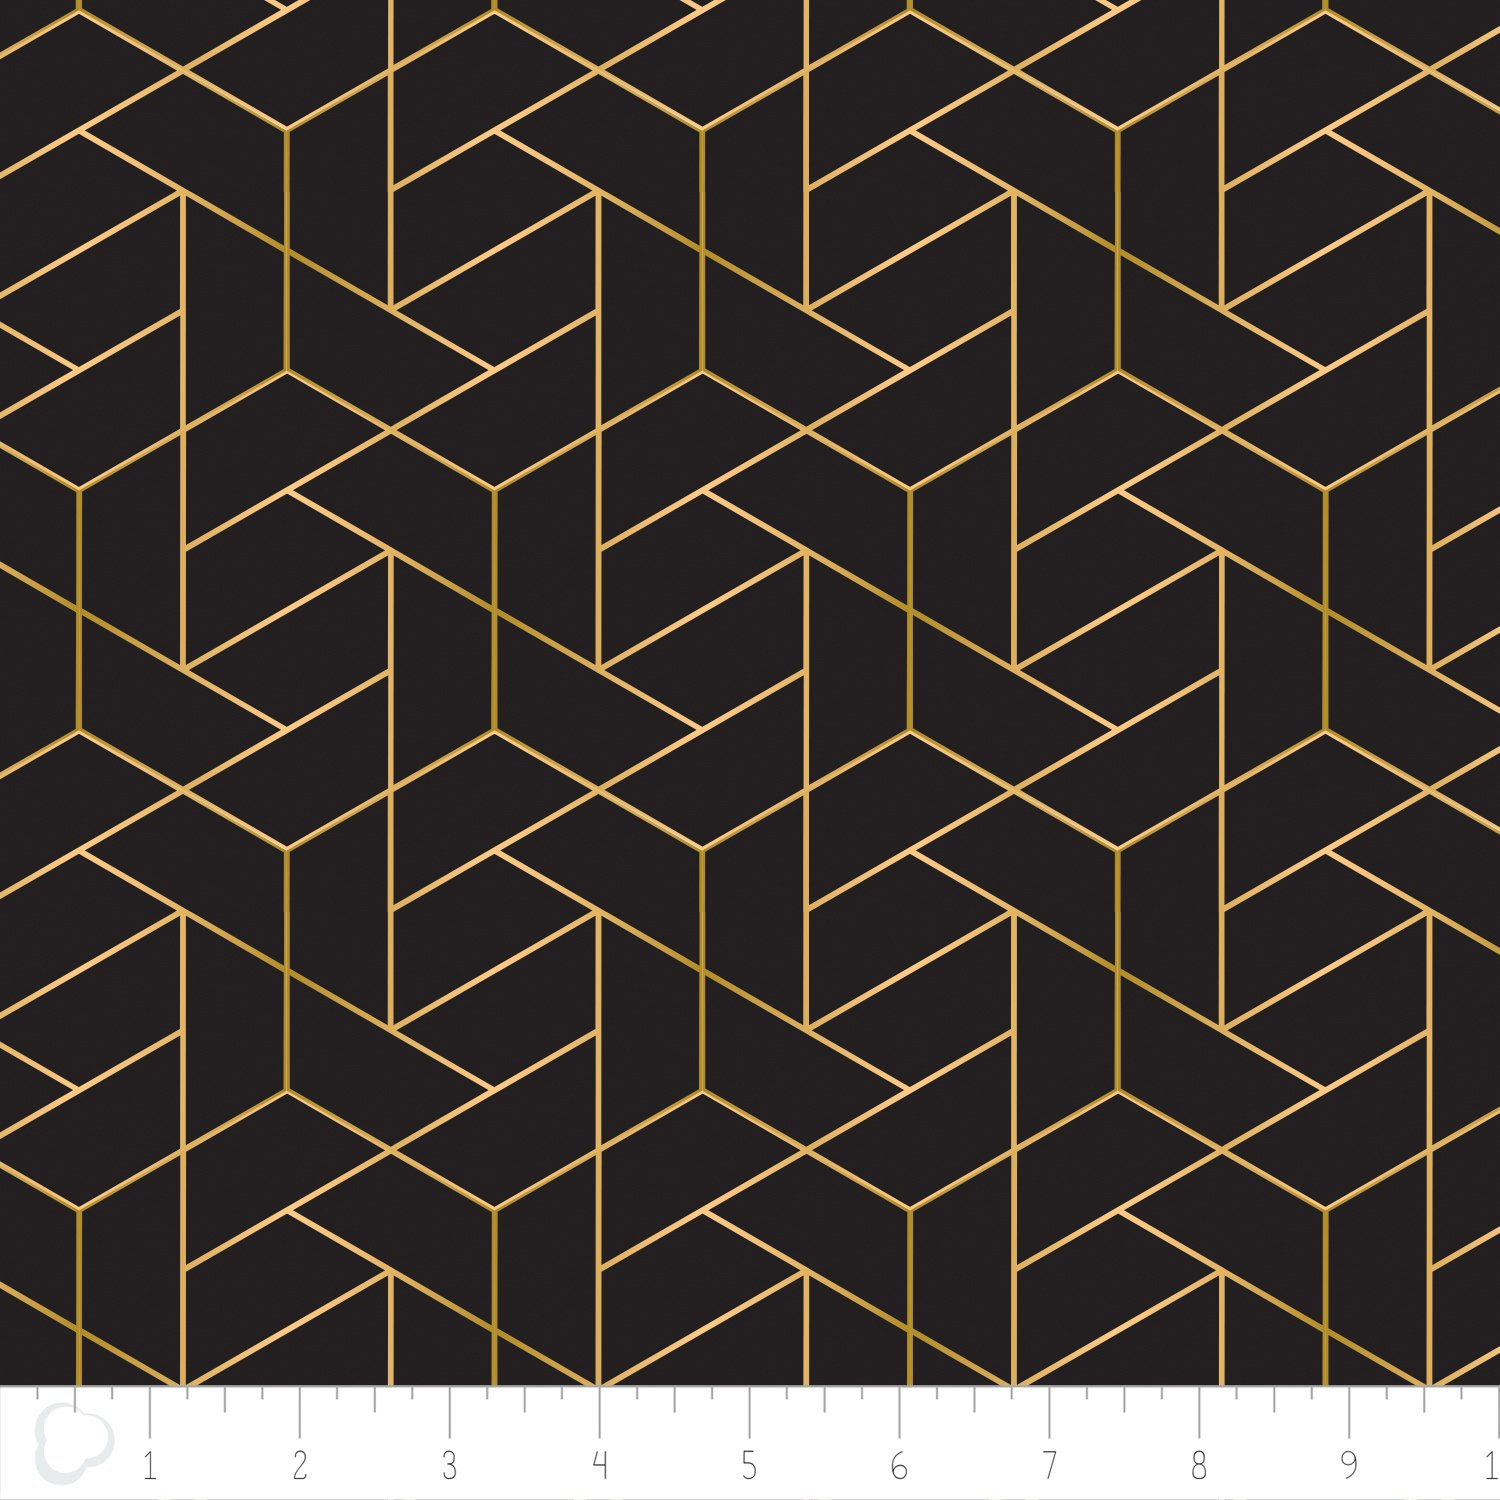 Camelot fabrics-Mixology luxe- Tiled in Black with Gold Metallic